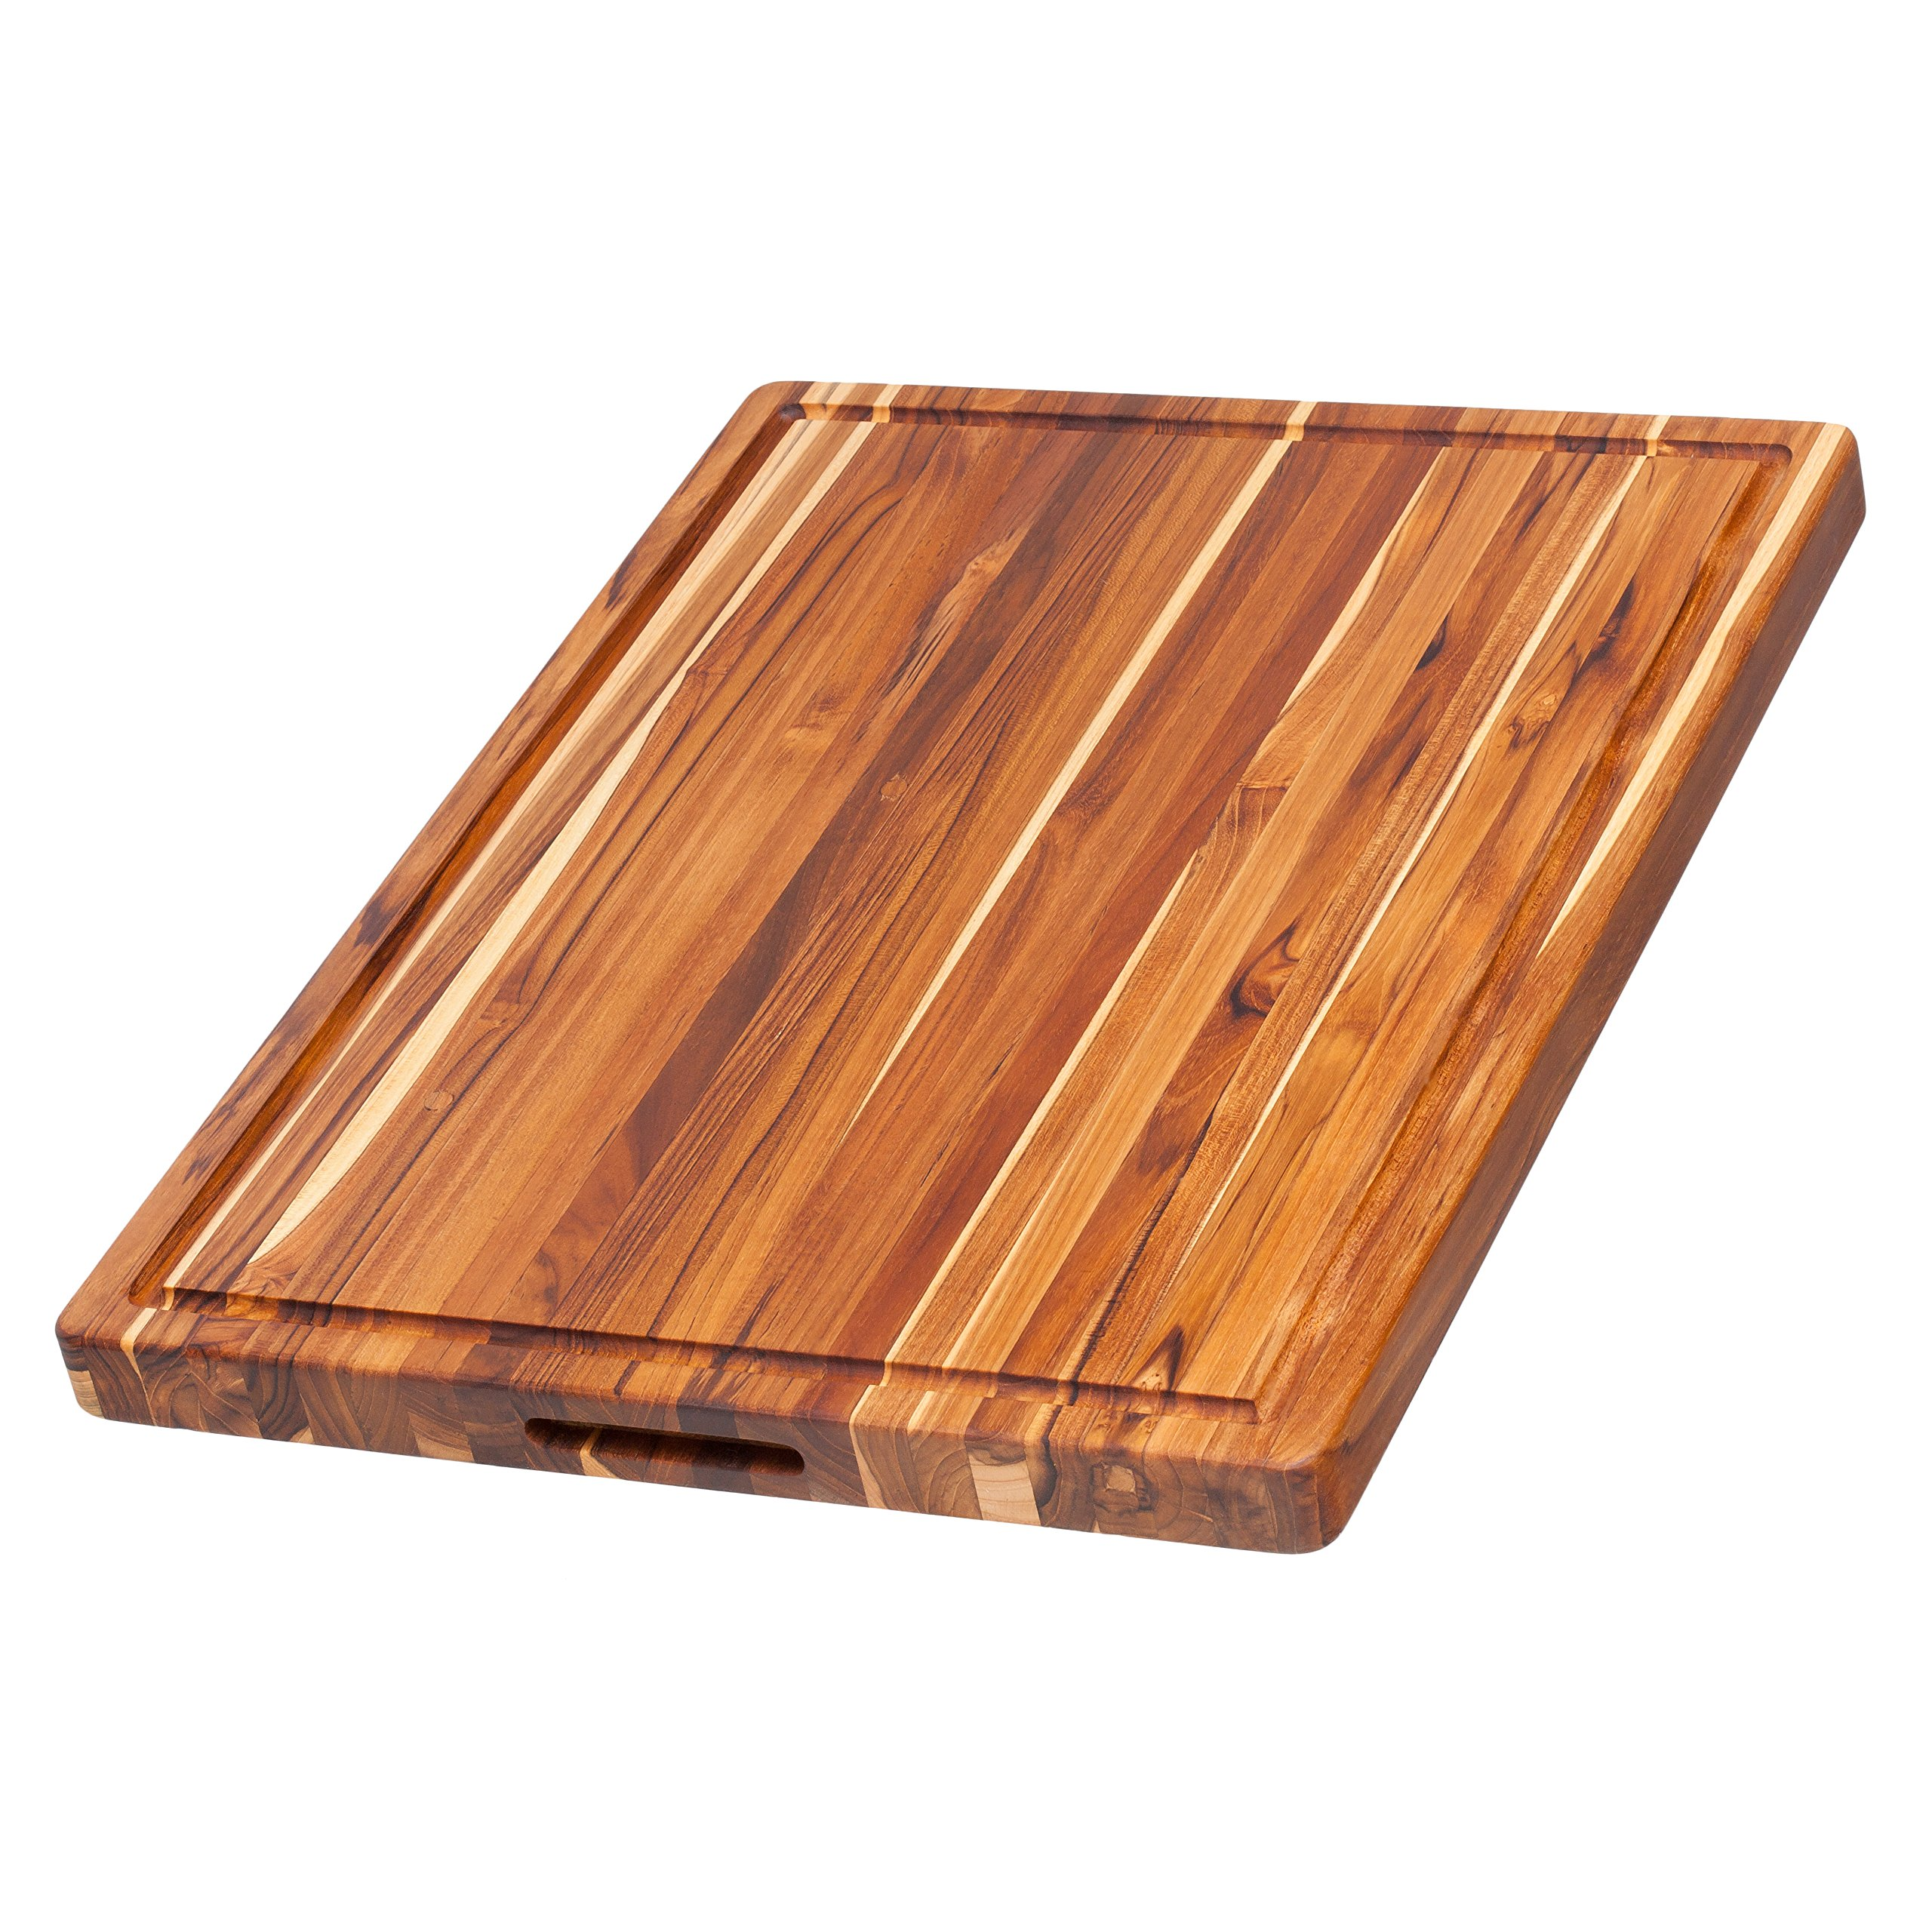 Teak Cutting Board - Rectangle Board With Hand Grip And Juice Canal (24 x 18 x 1.5 in.) - By Teakhaus by Teakhaus